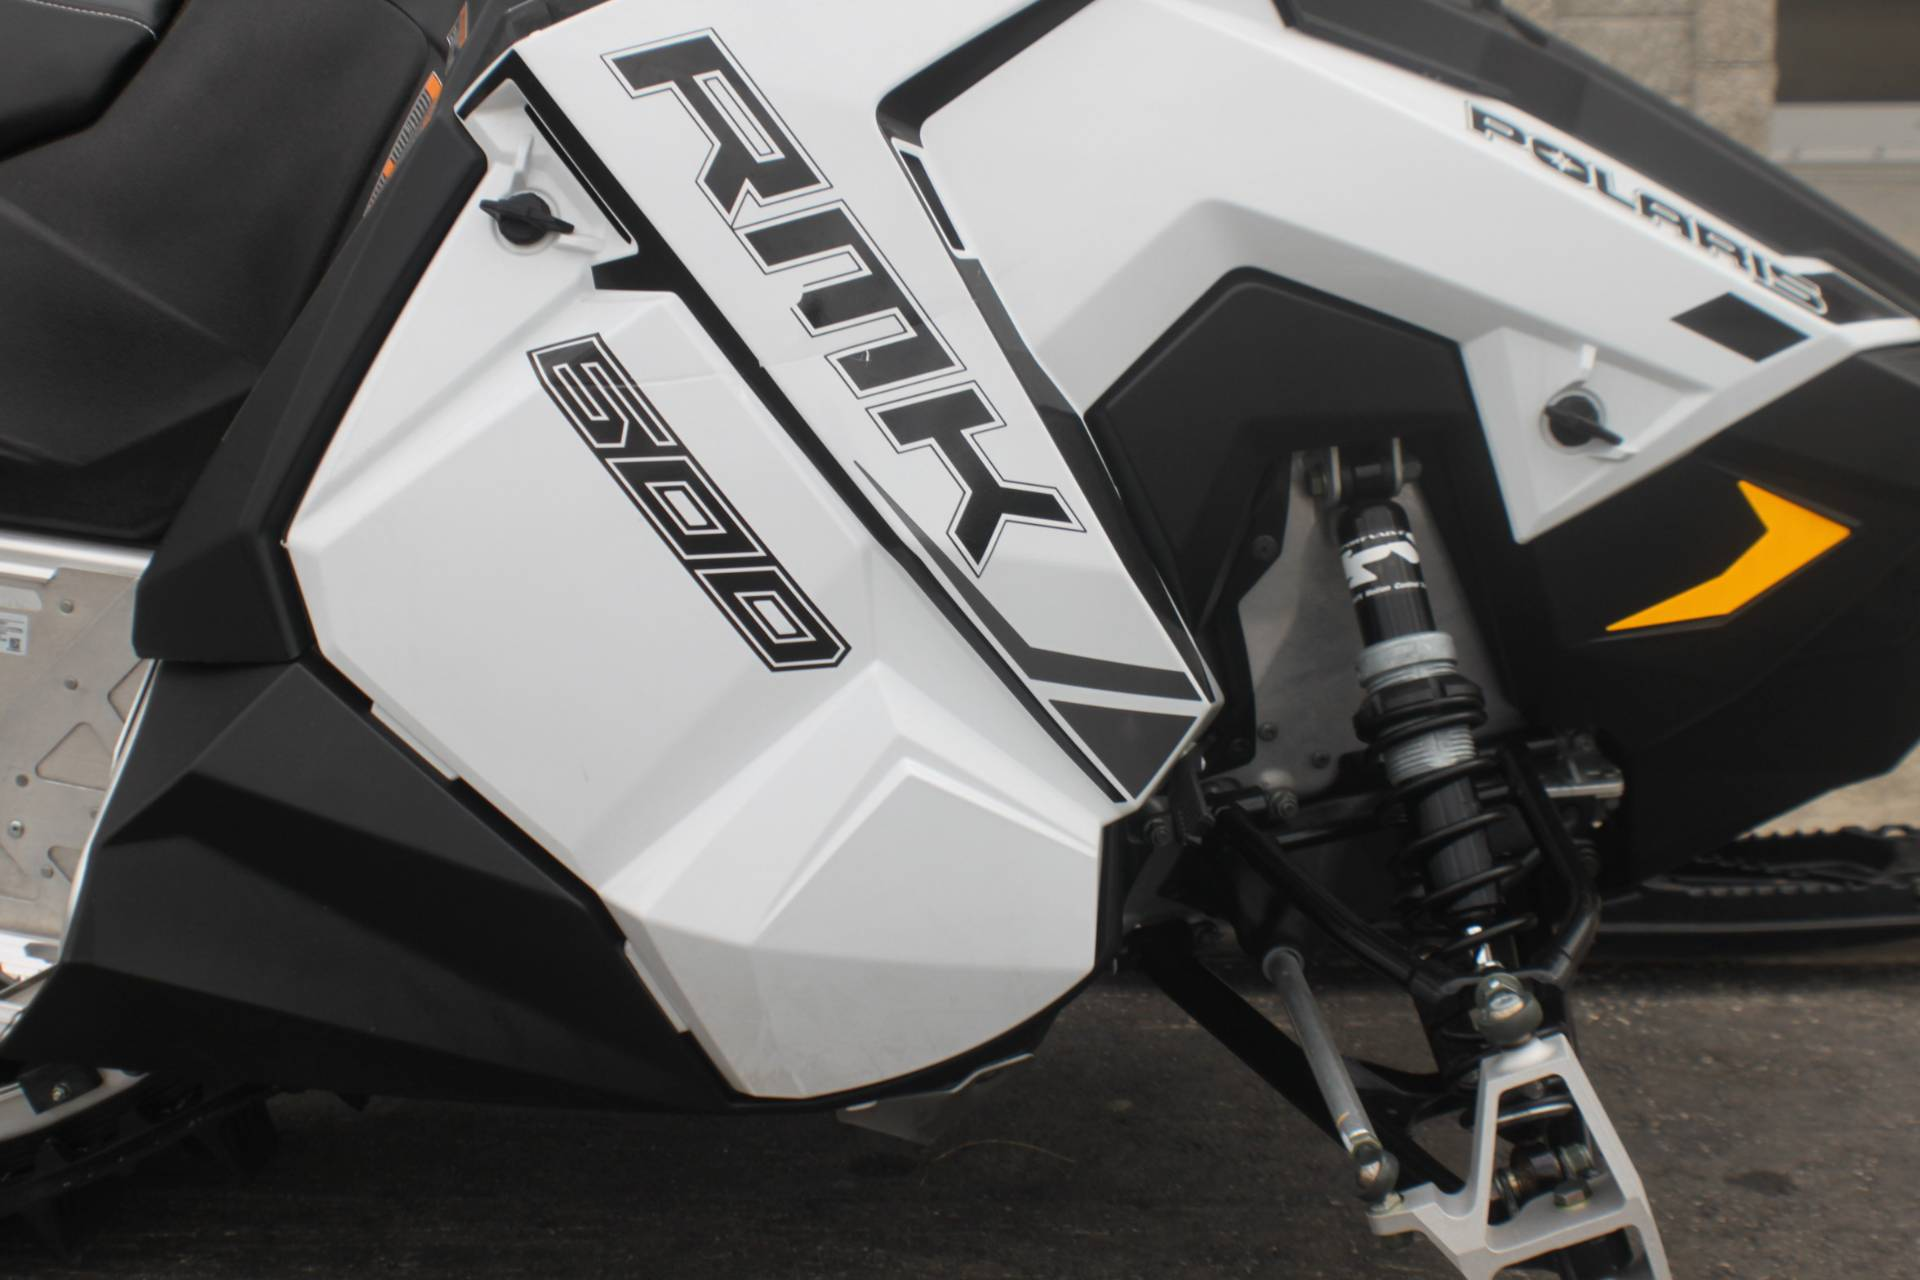 2019 Polaris 600 RMK 144 ES in Janesville, Wisconsin - Photo 16